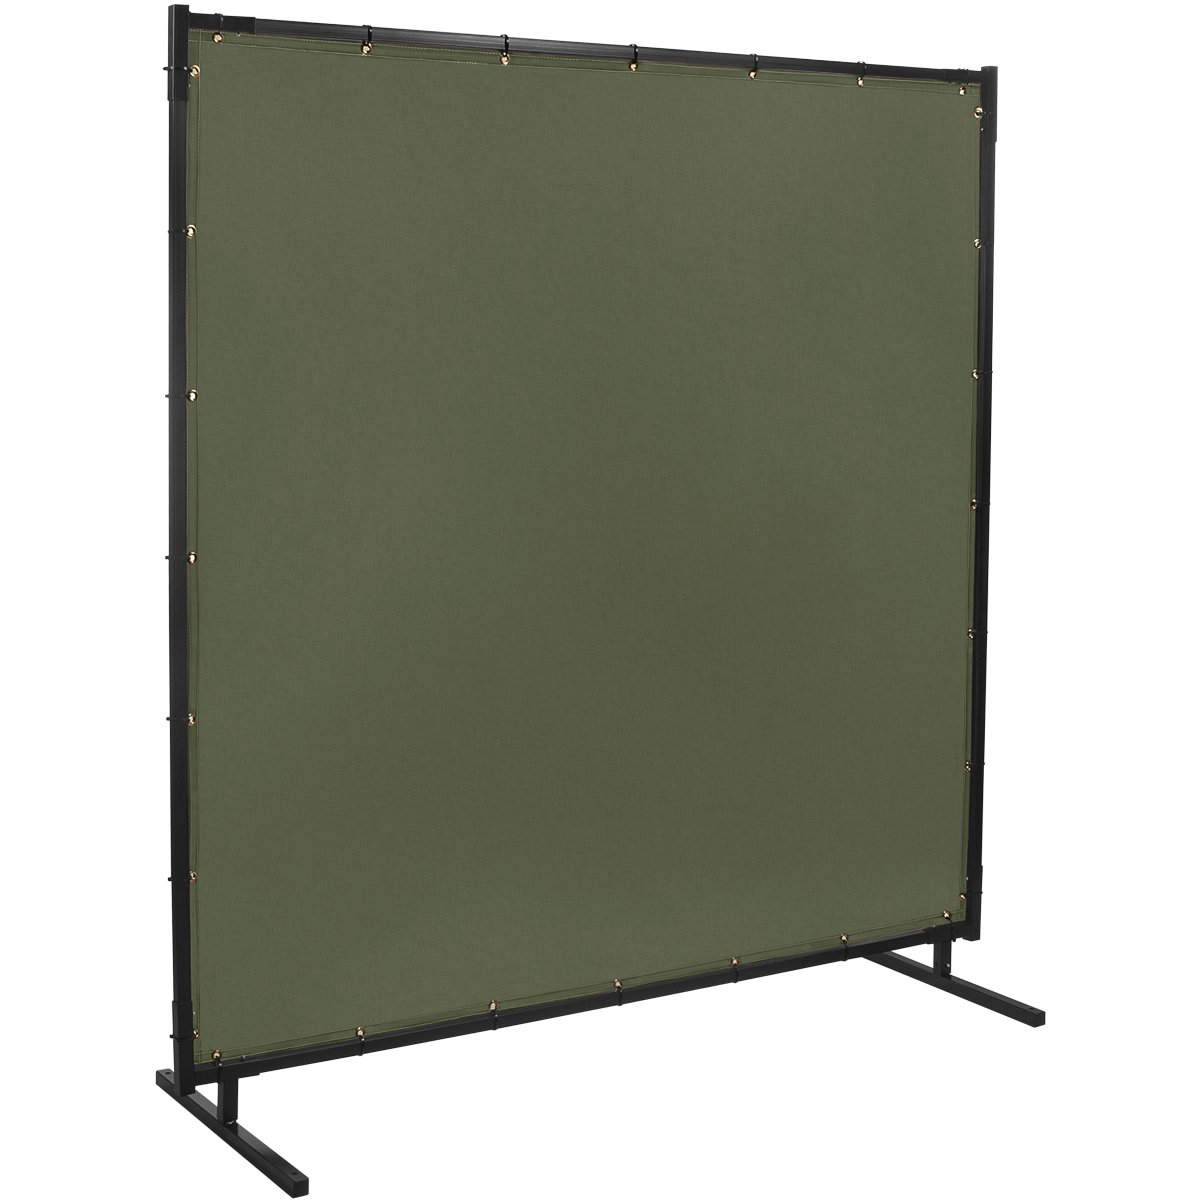 Steiner 501HD-6X10 Protect-O-Screen HD Welding Screen with Flame Retardant 12-Ounce Canvas Curtain, Duck Olive Green, 6' x 10'